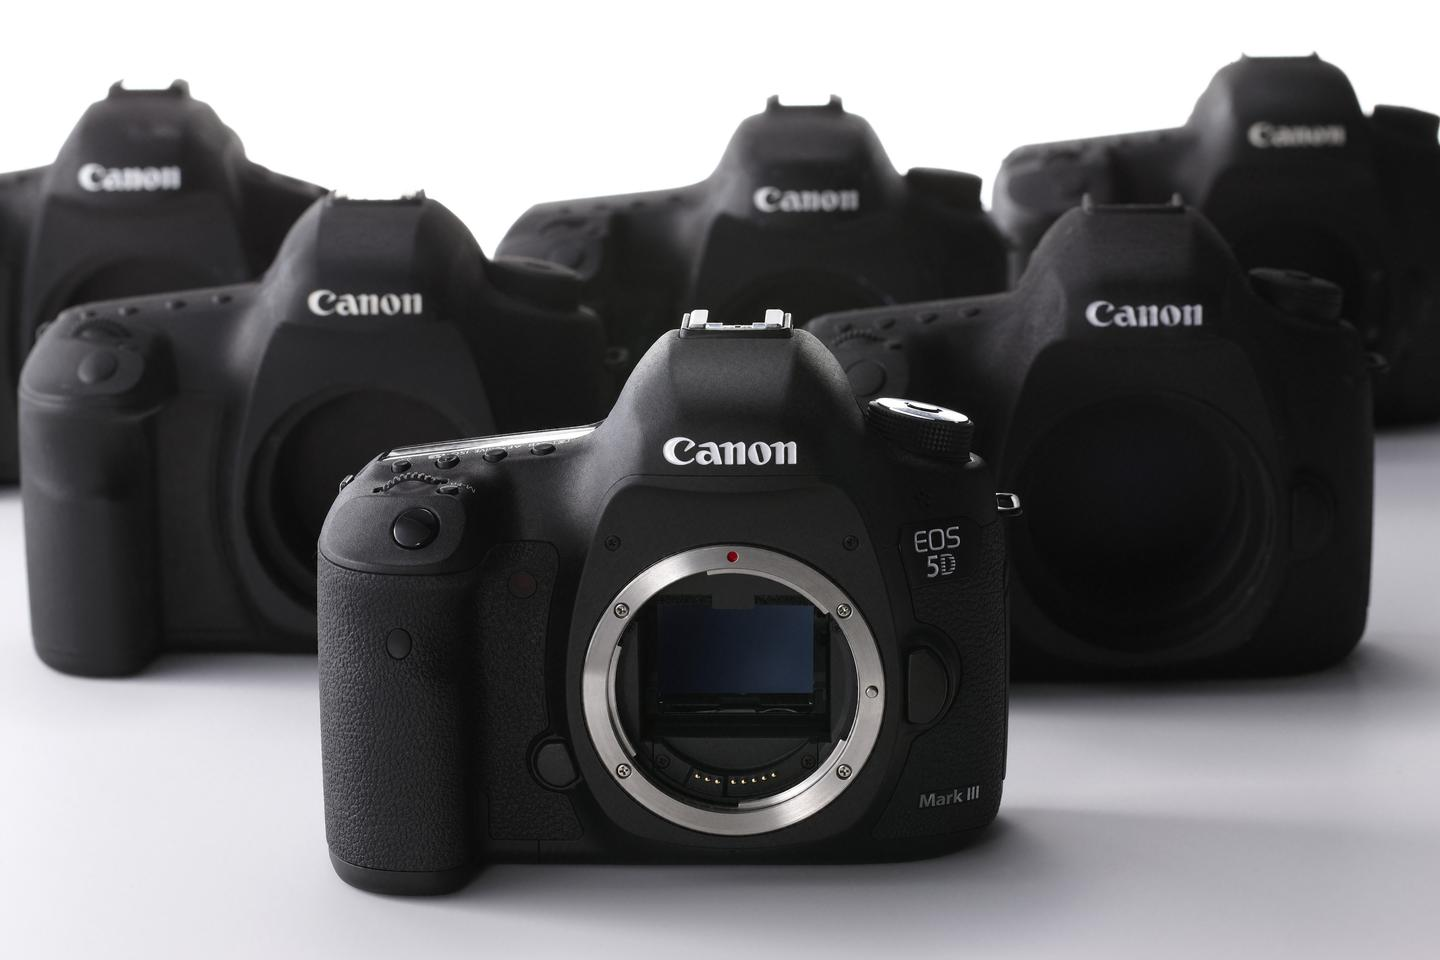 The Canon EOS 5D Mark III firmware update will allow the camera to produce uncompressed HDMI output